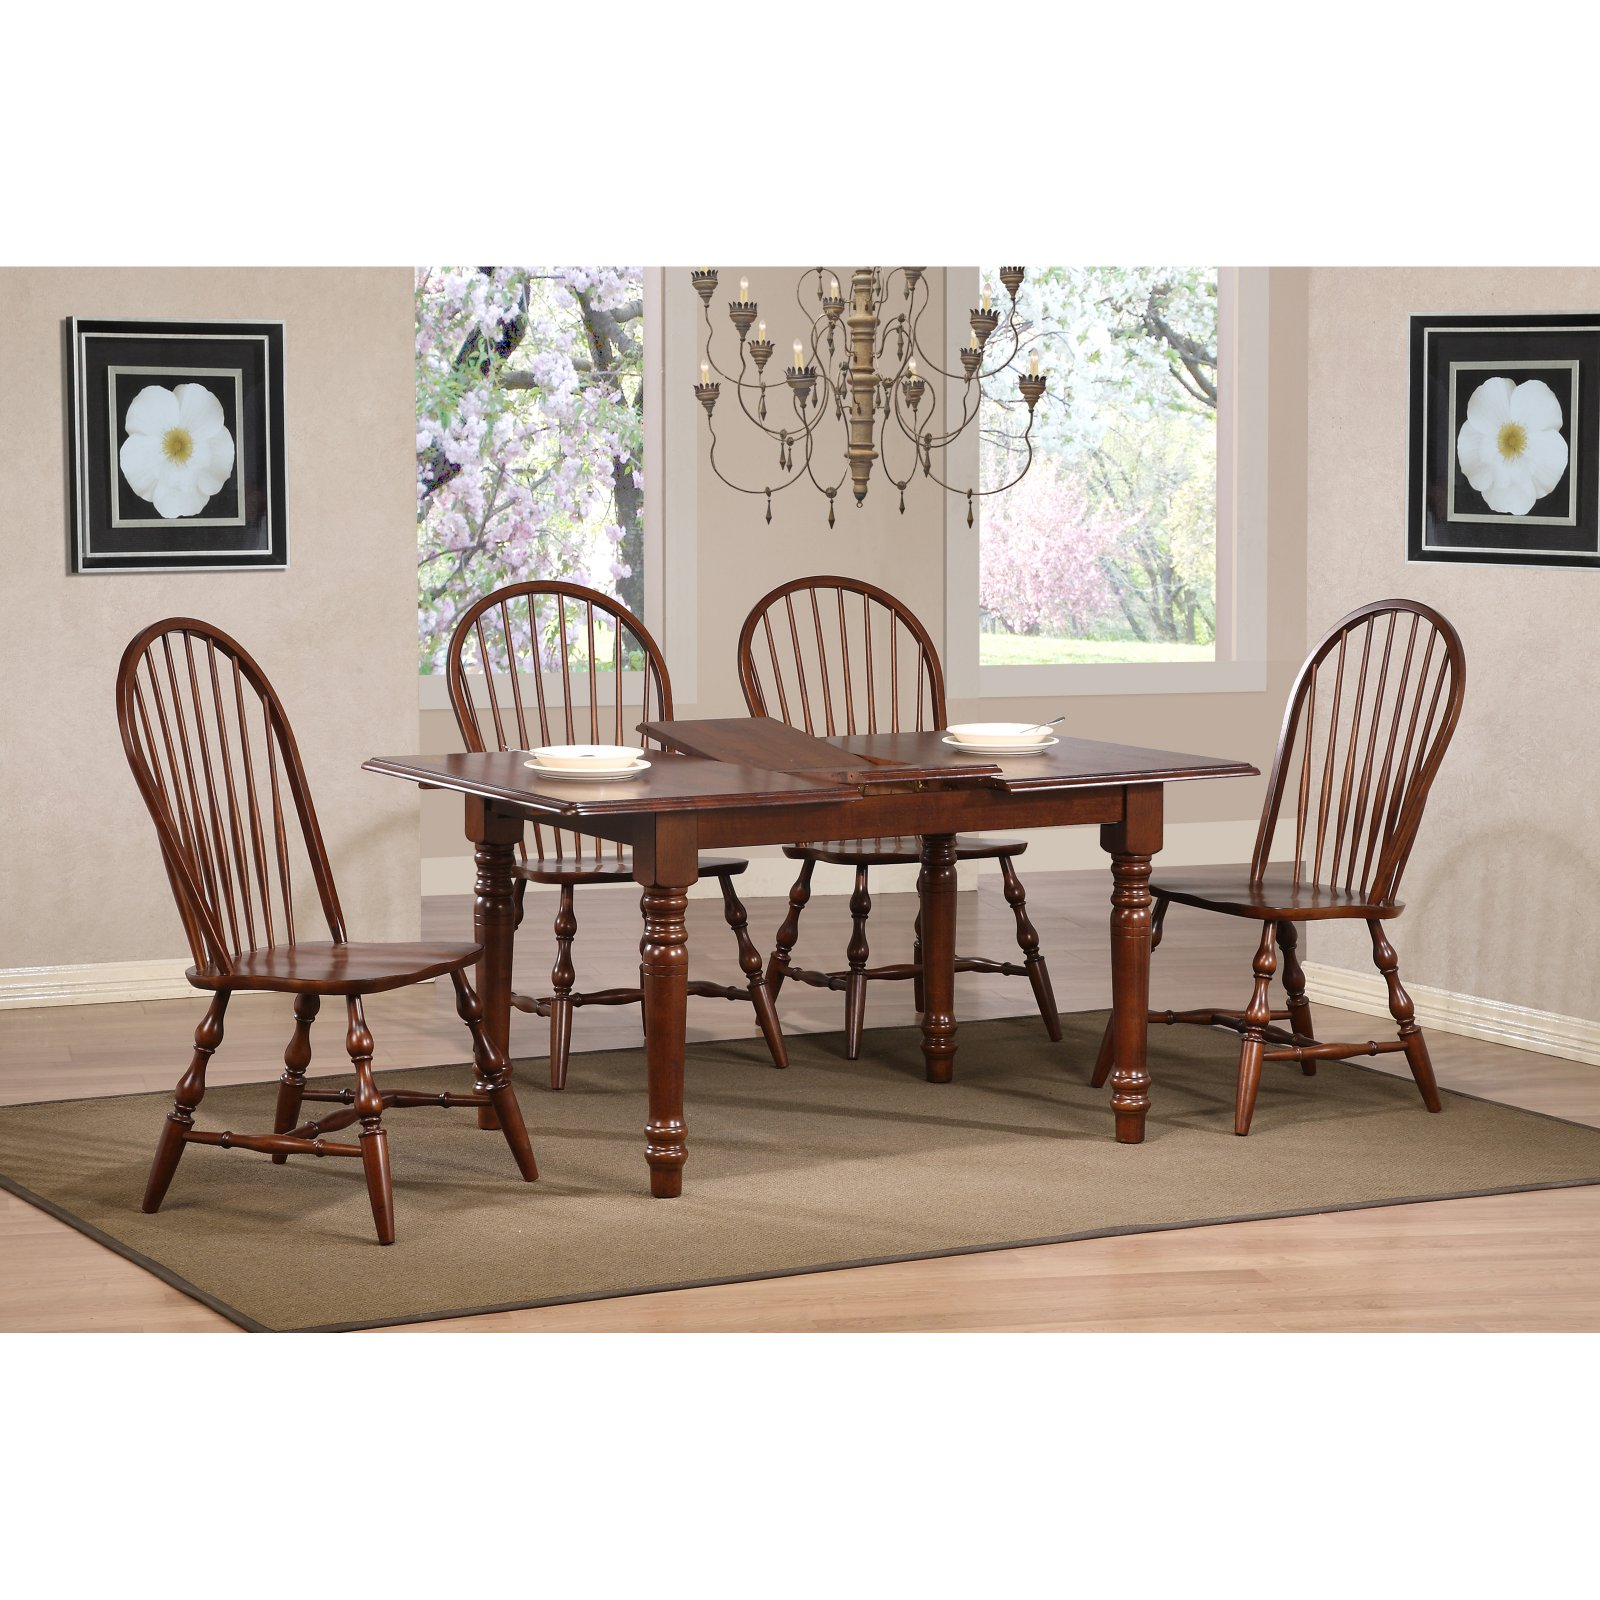 Sunset Trading 5 pc. Butterfly Dining Set with Spindleback Chairs - Chestnut